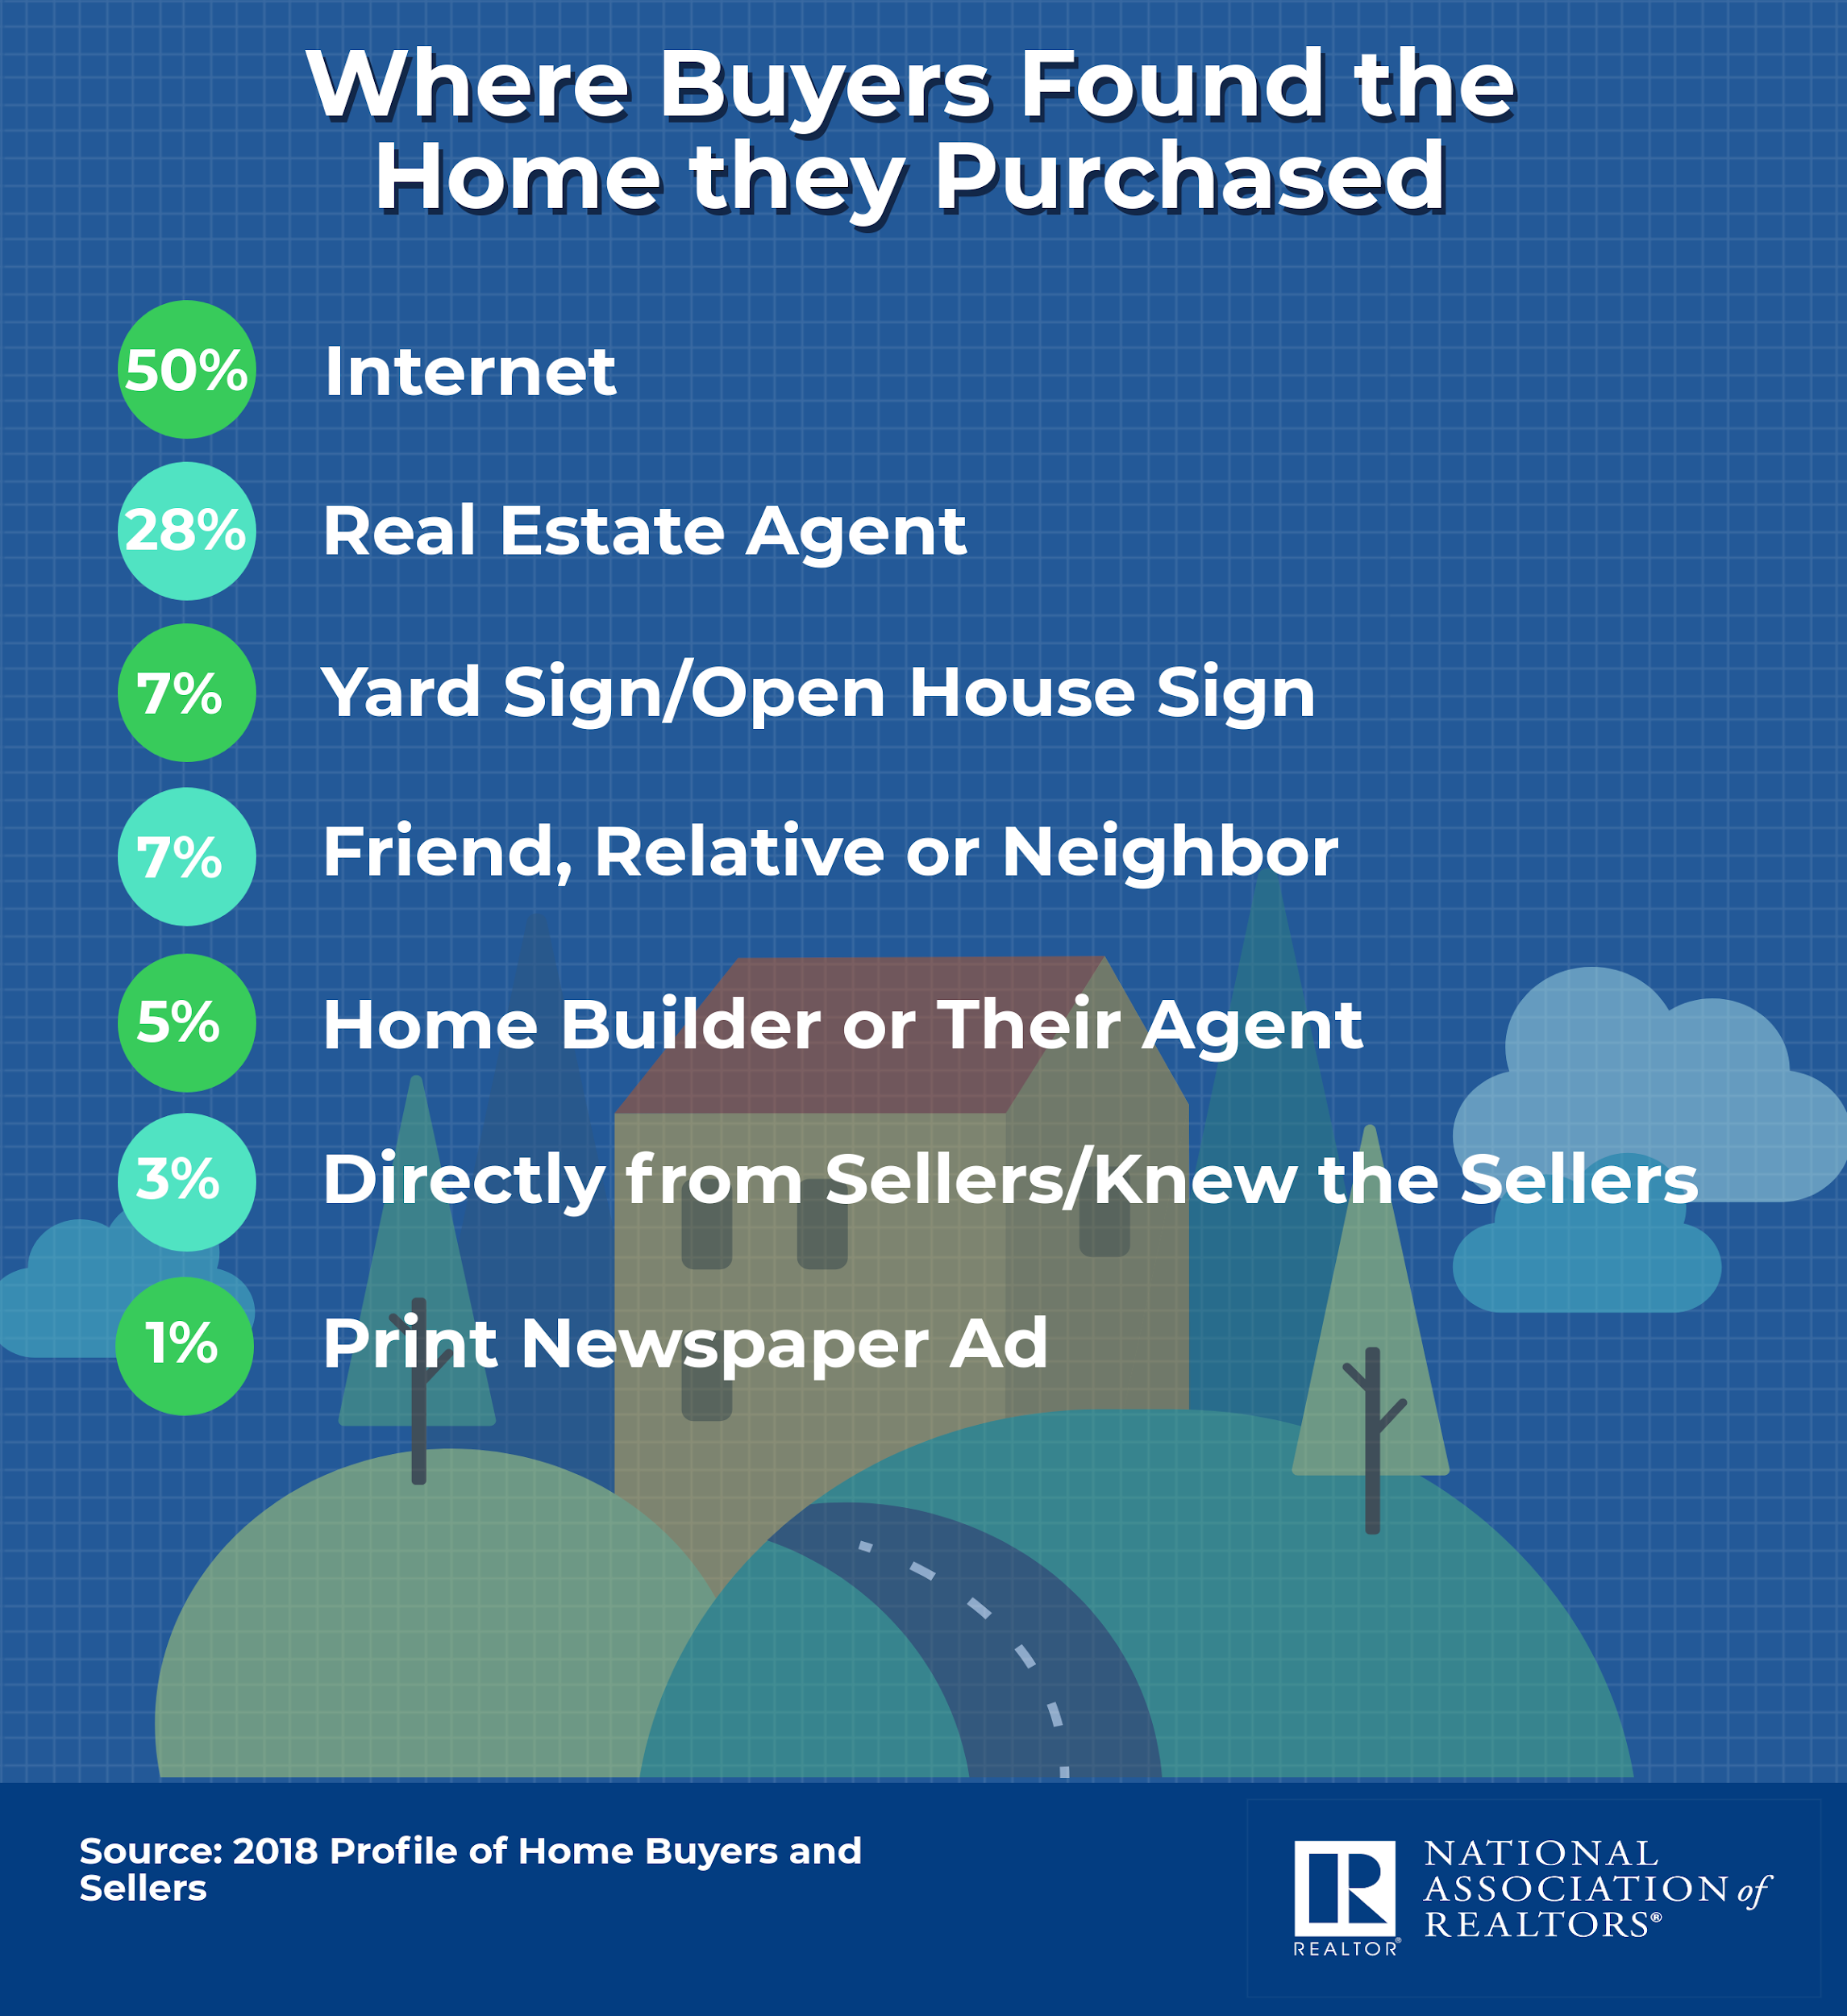 infographic showing statistics of where home buyers found their homes